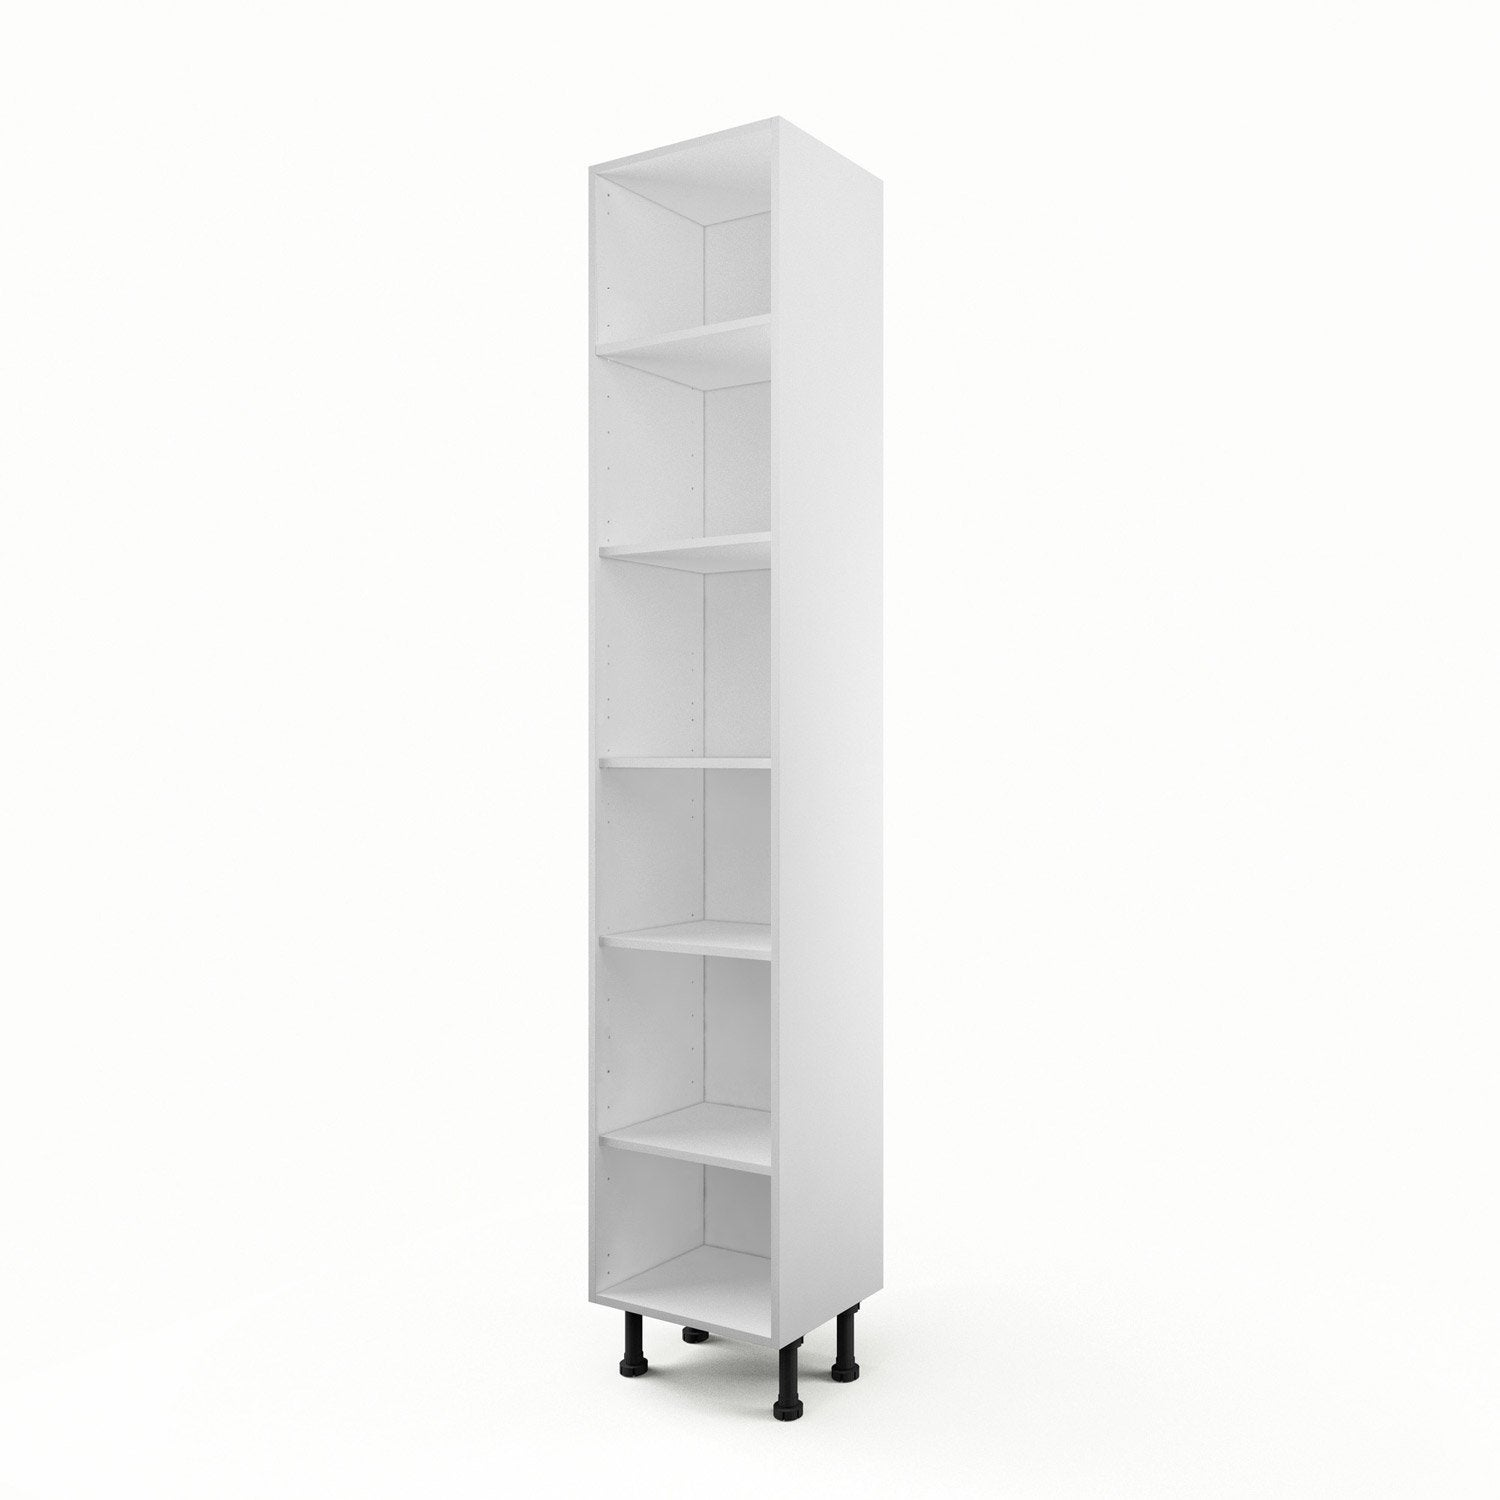 caisson de cuisine armoire a40 delinia blanc x. Black Bedroom Furniture Sets. Home Design Ideas